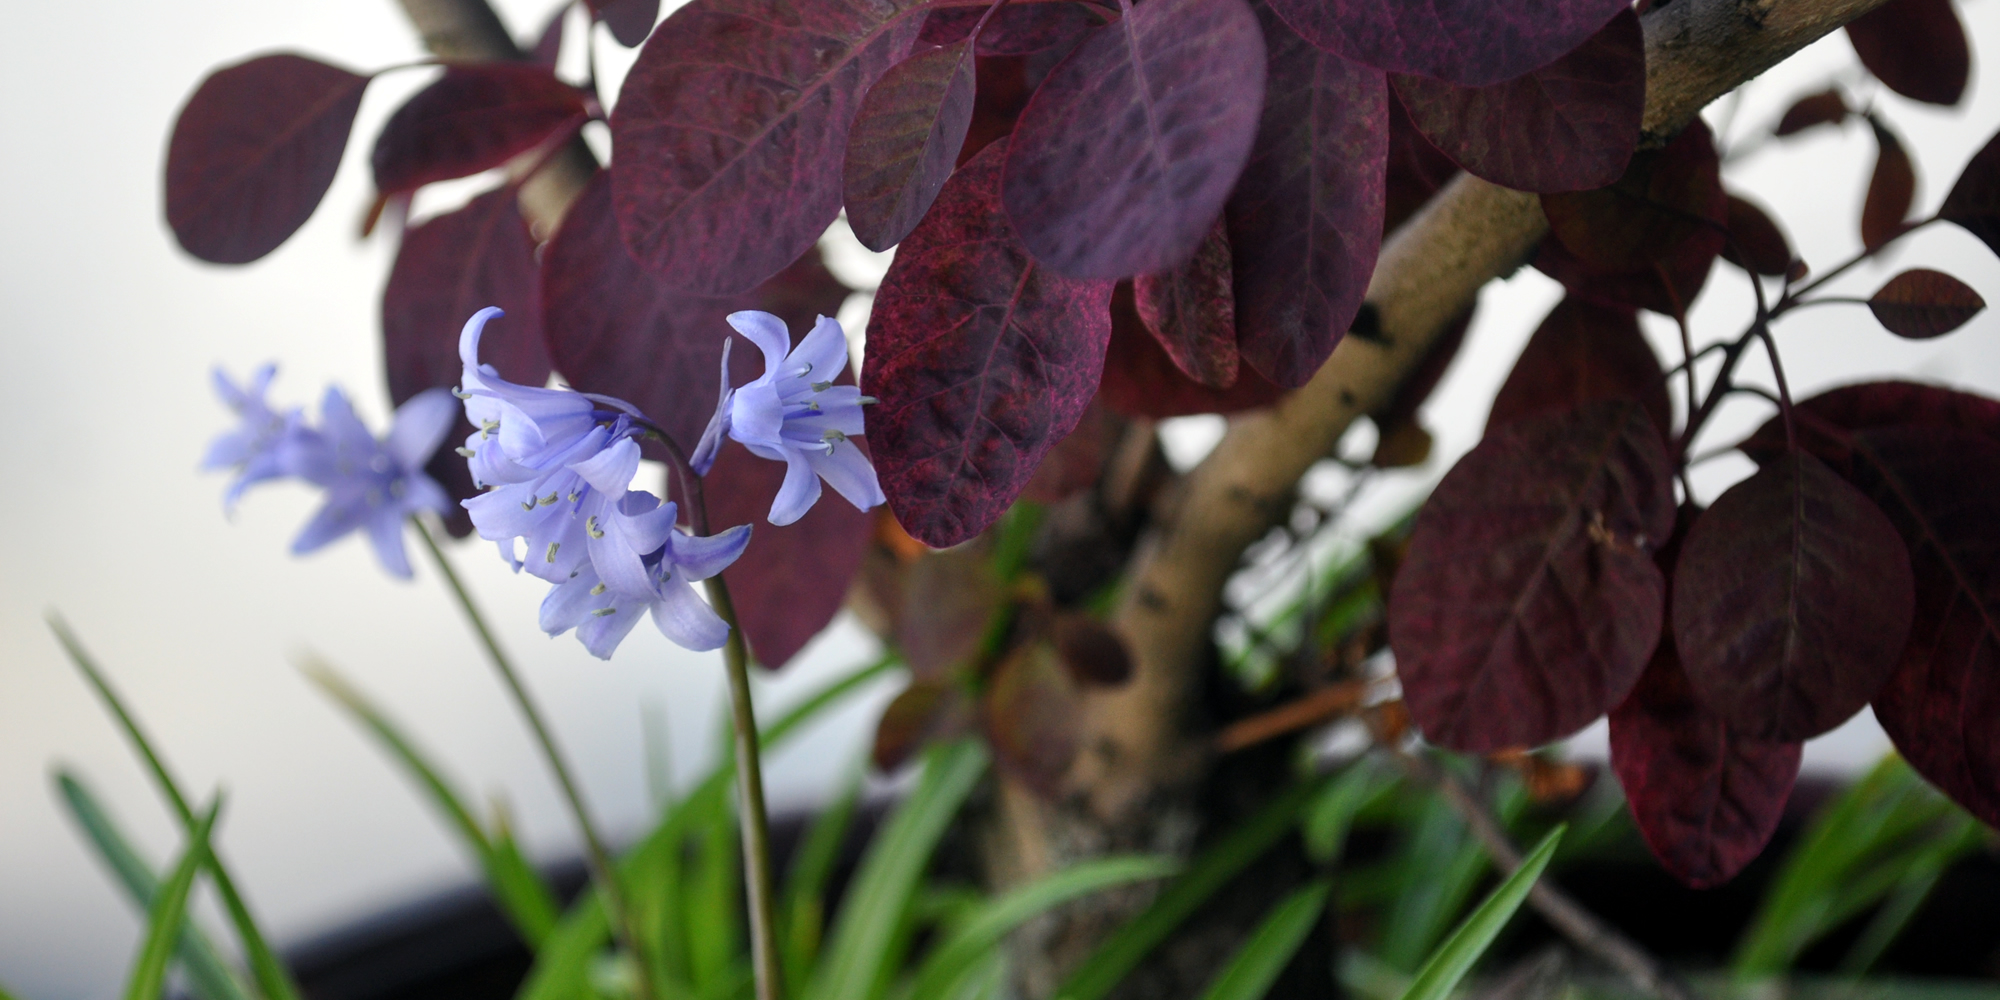 Photo: bluebells in a planter